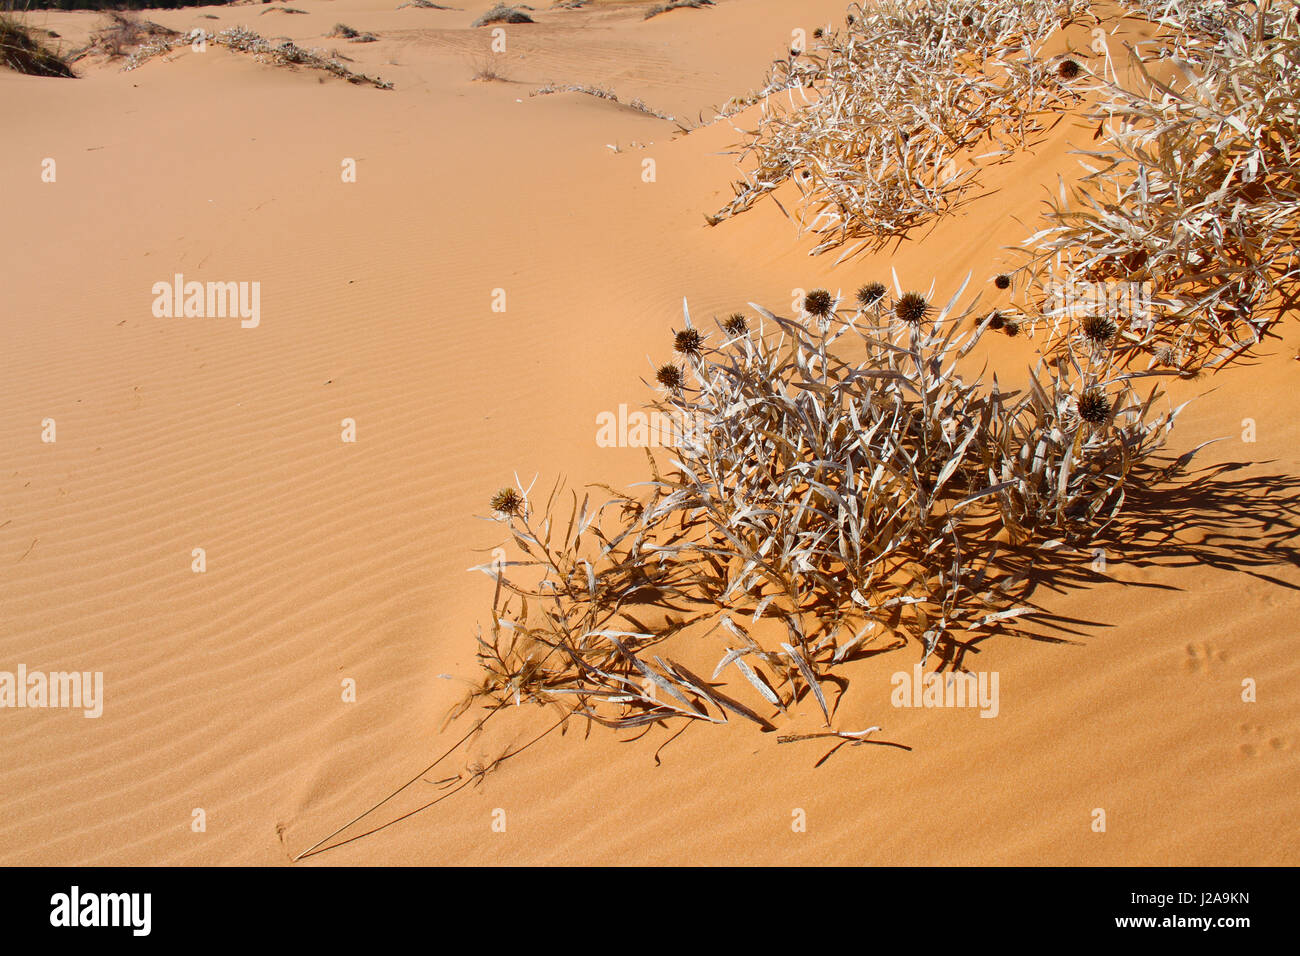 Dried out plant in red sand of desert - Stock Image